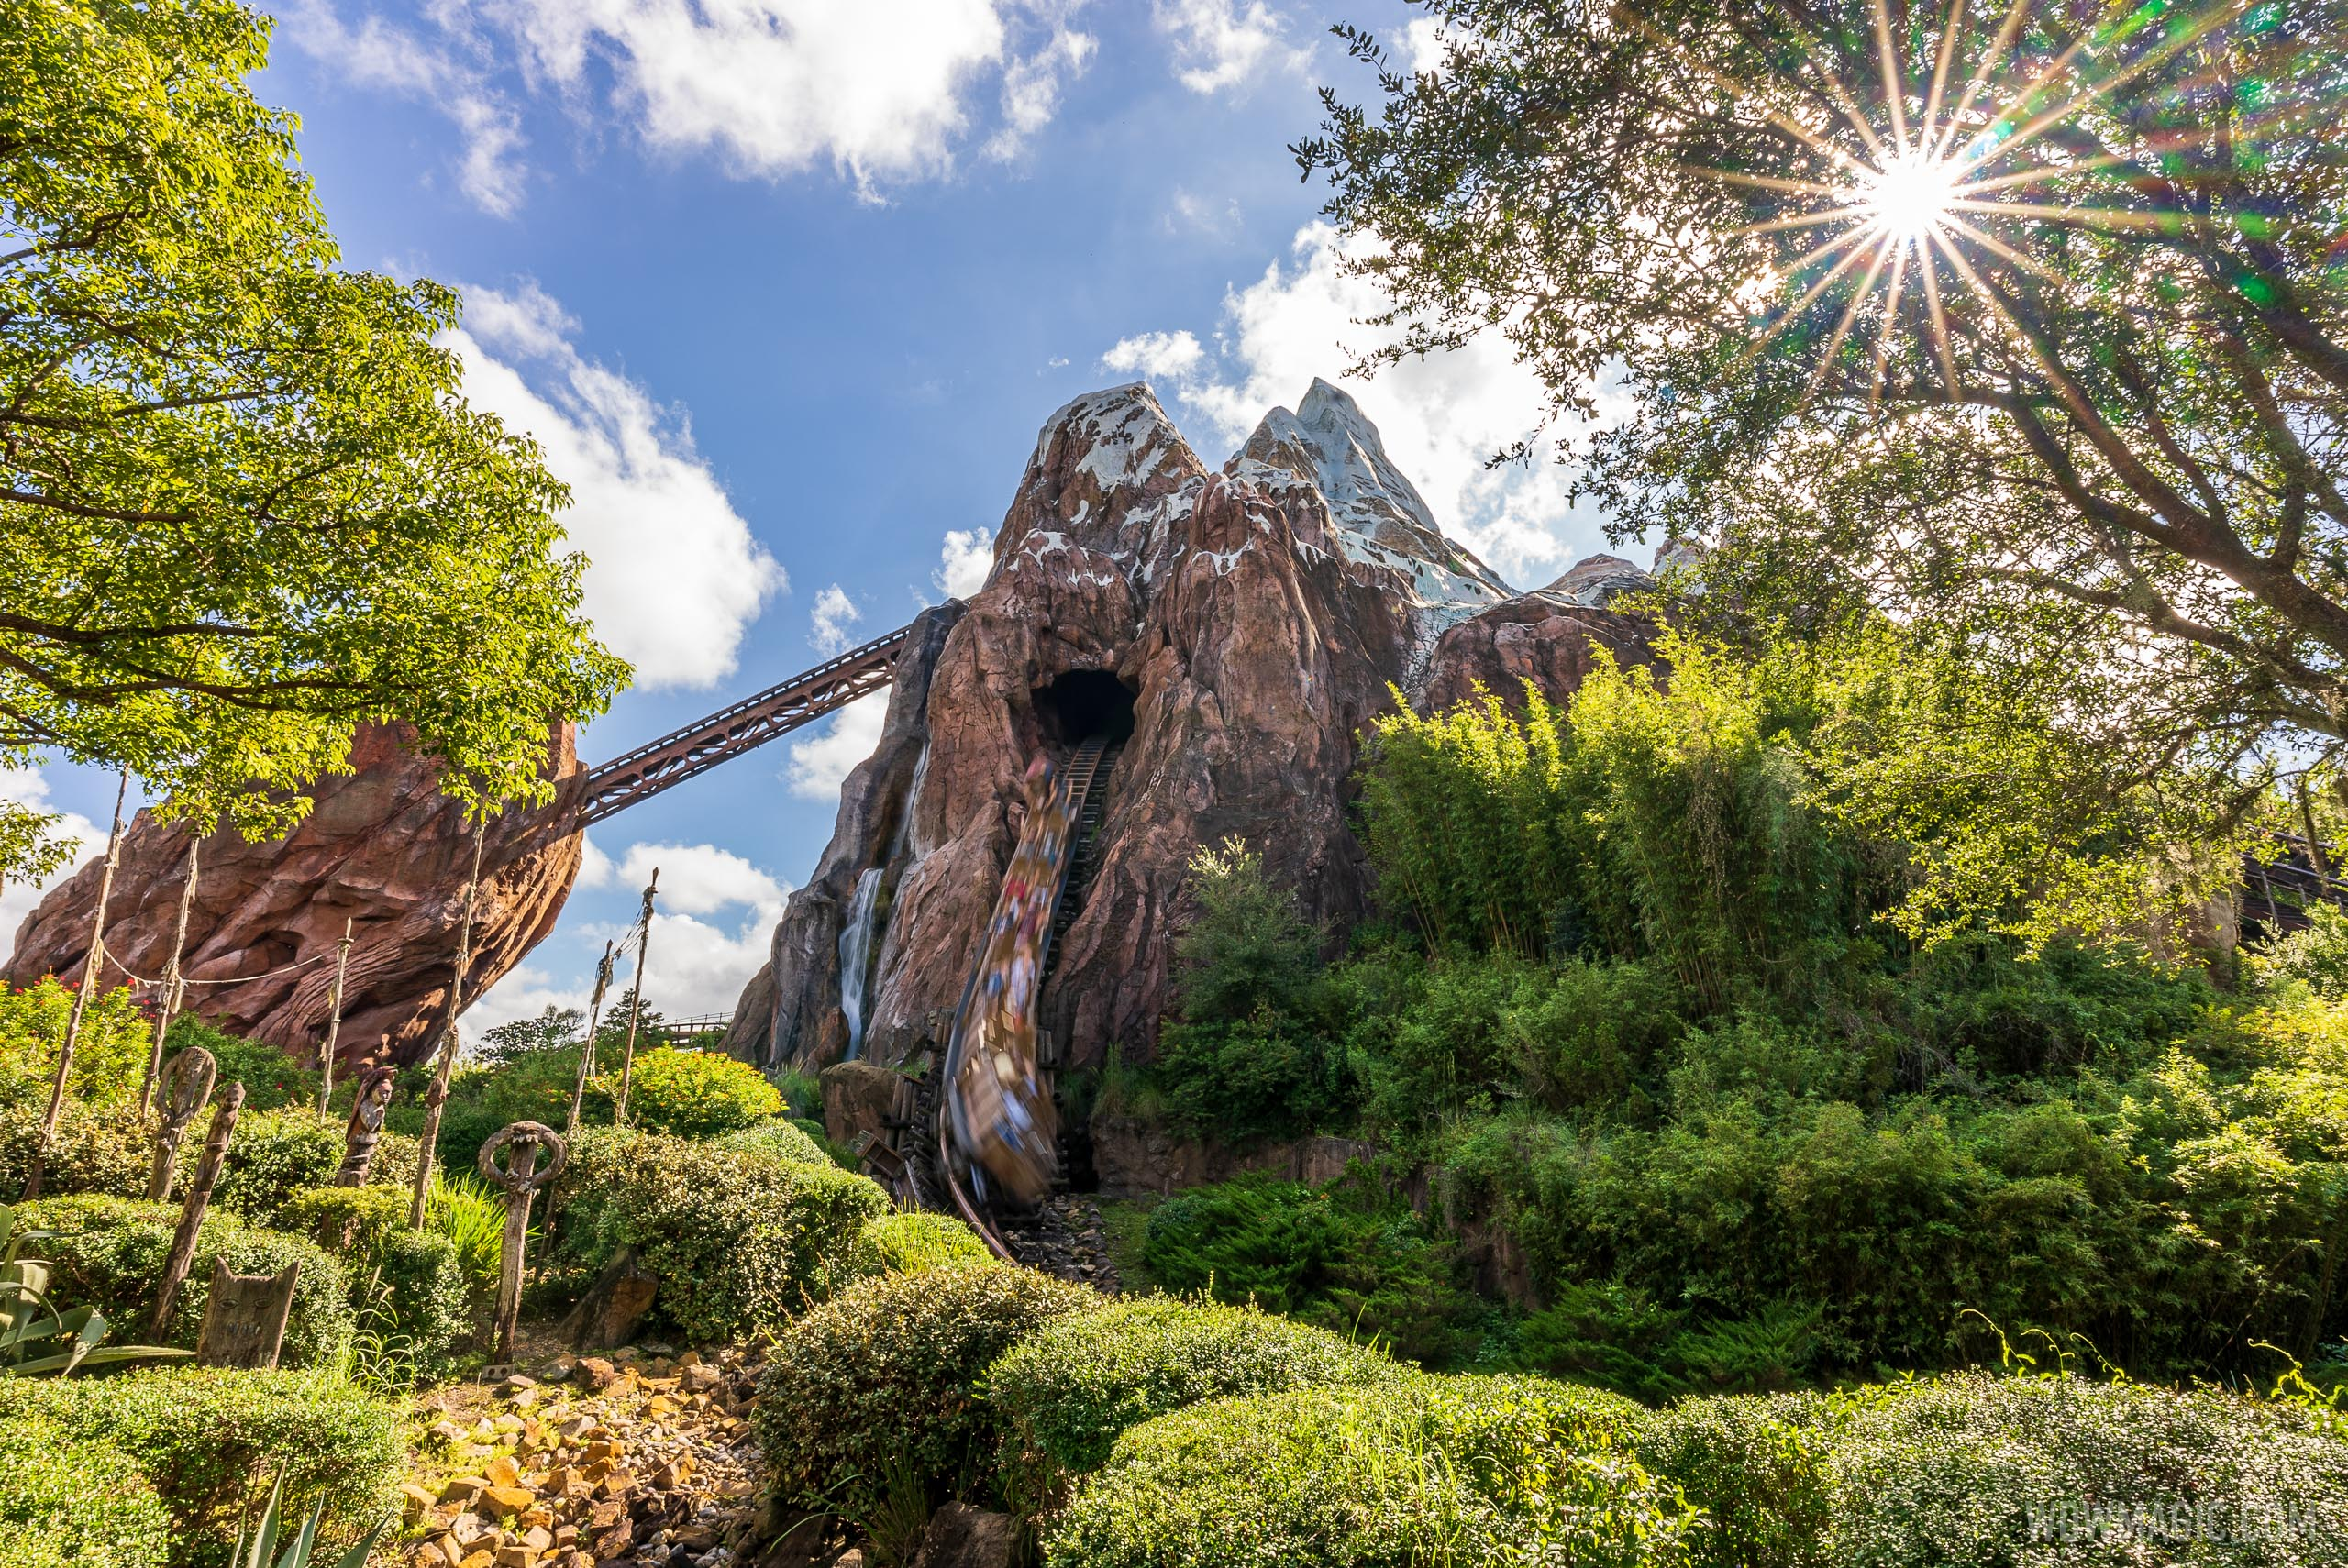 Expedition Everest overview